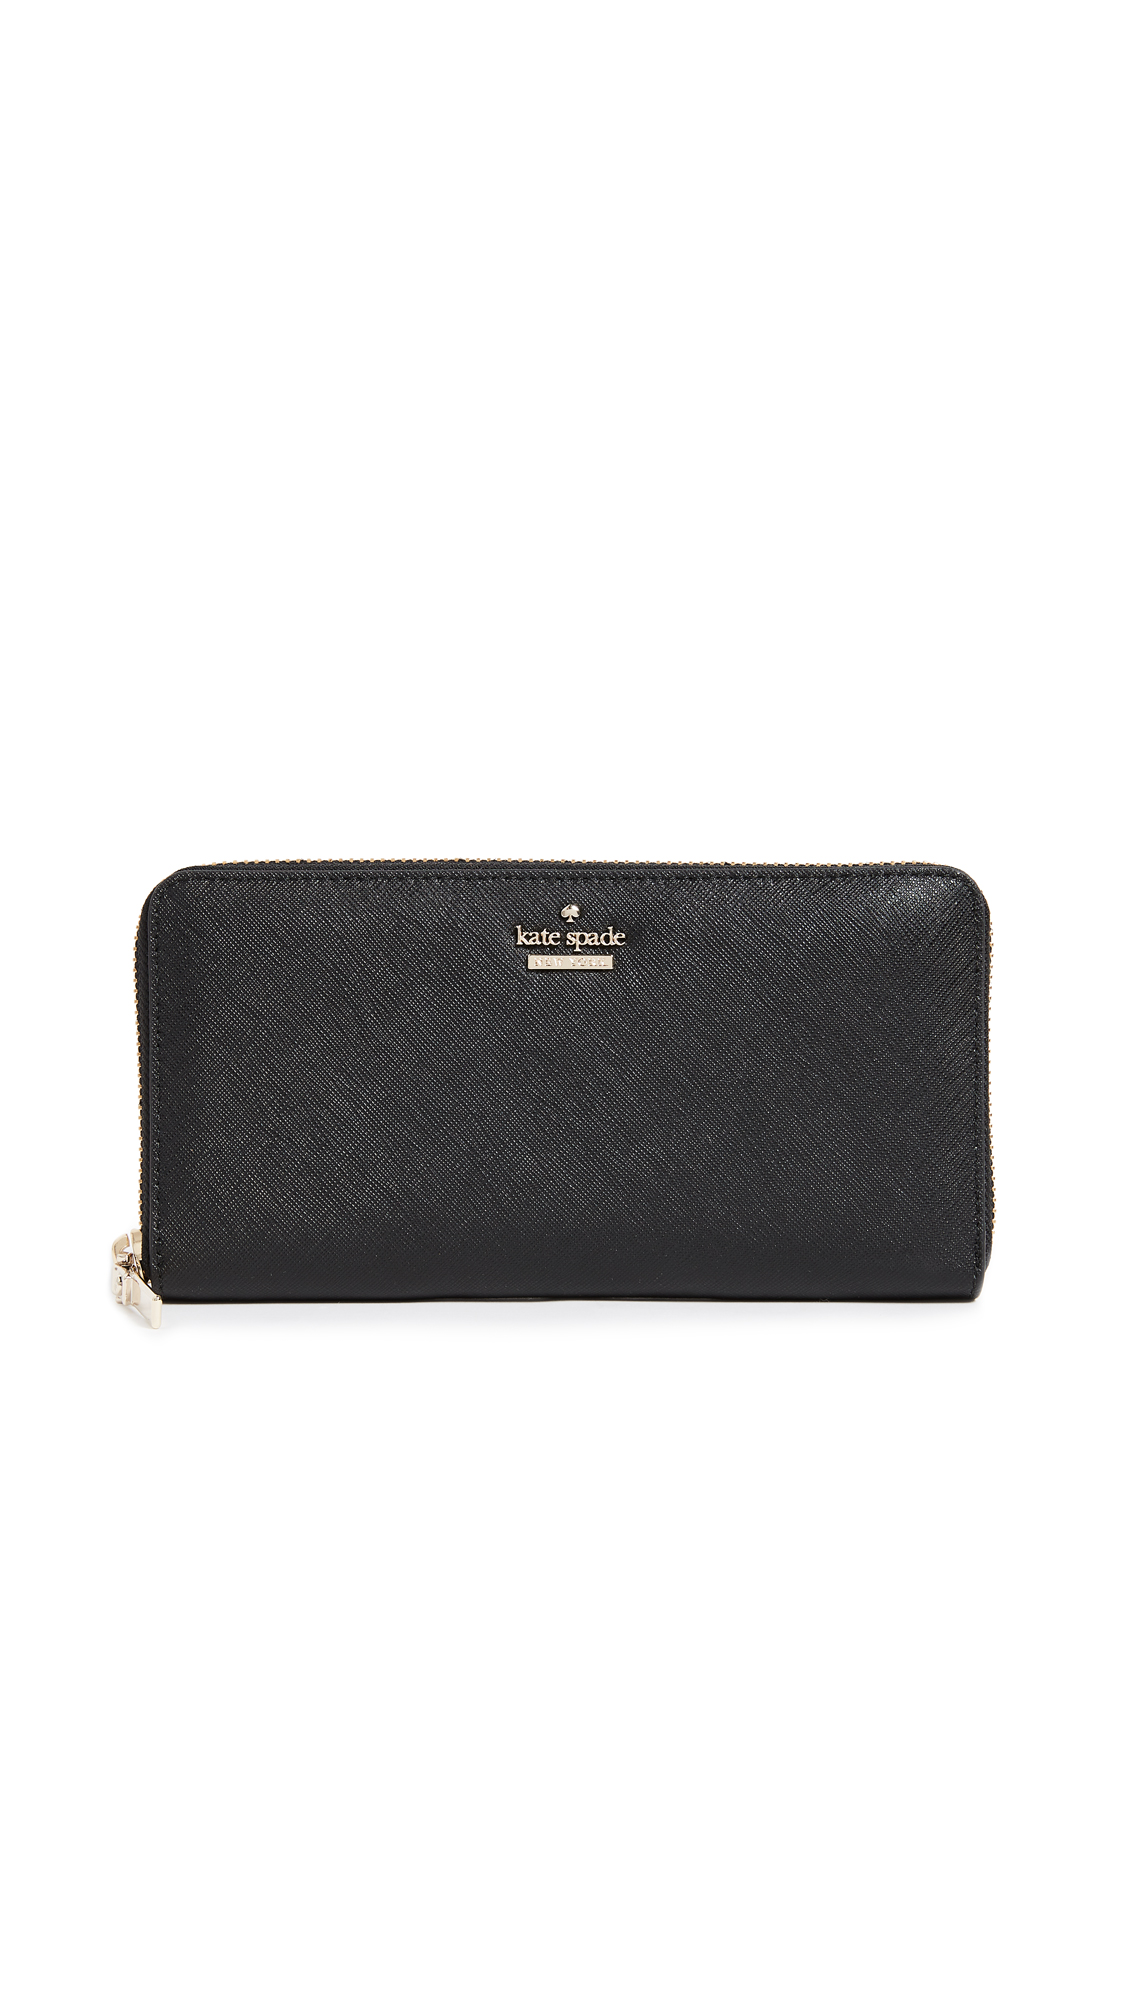 Kate Spade New York Cameron Street Lacey Zip Around Wallet - Black